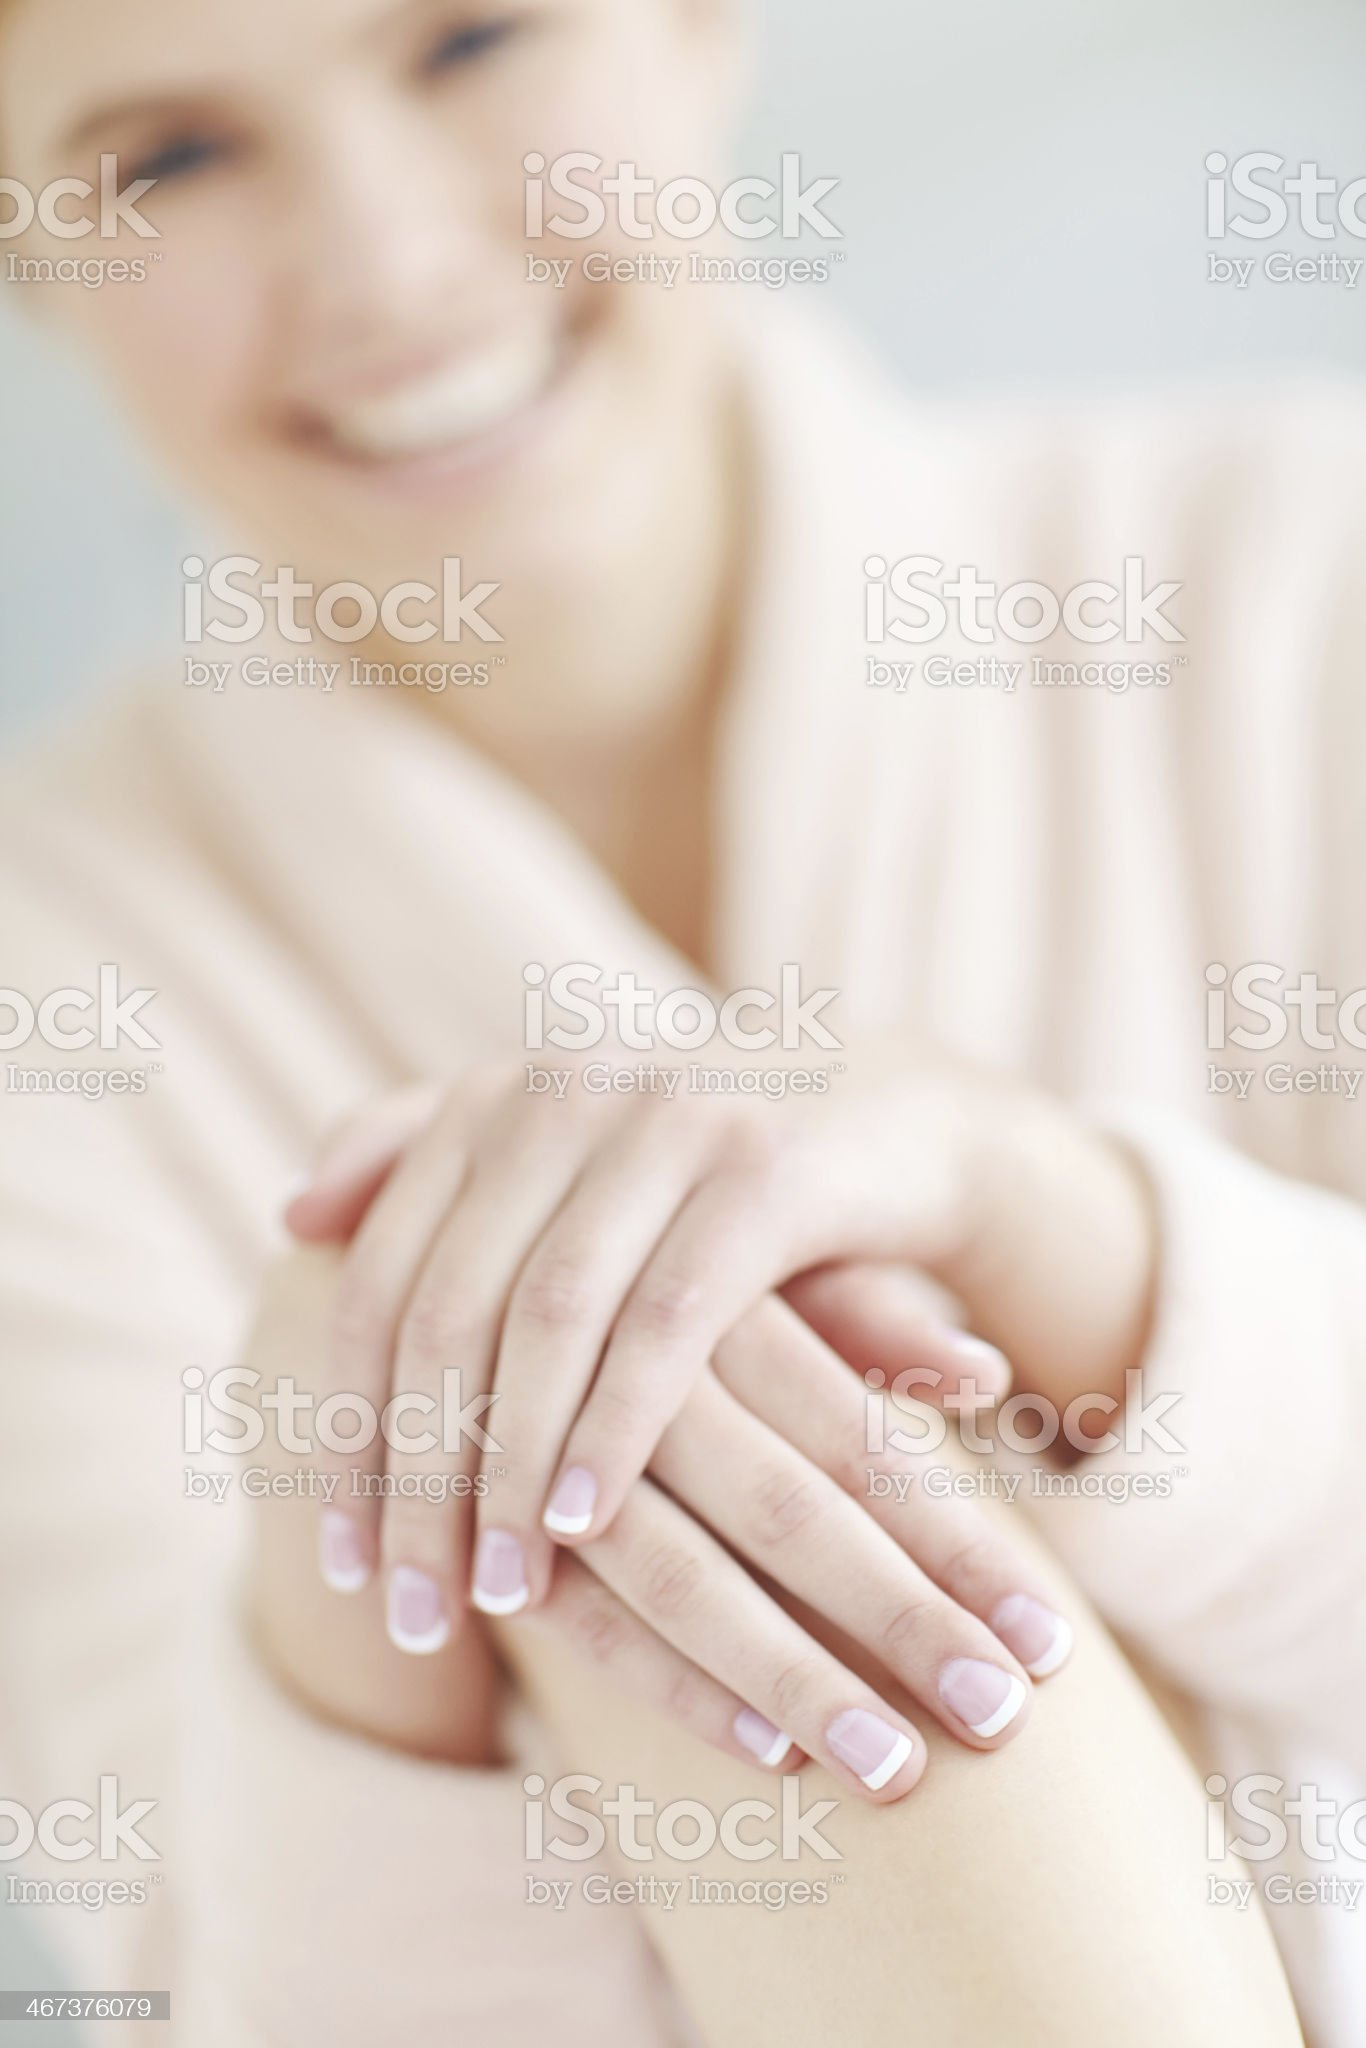 Beautifully manicured hands royalty-free stock photo